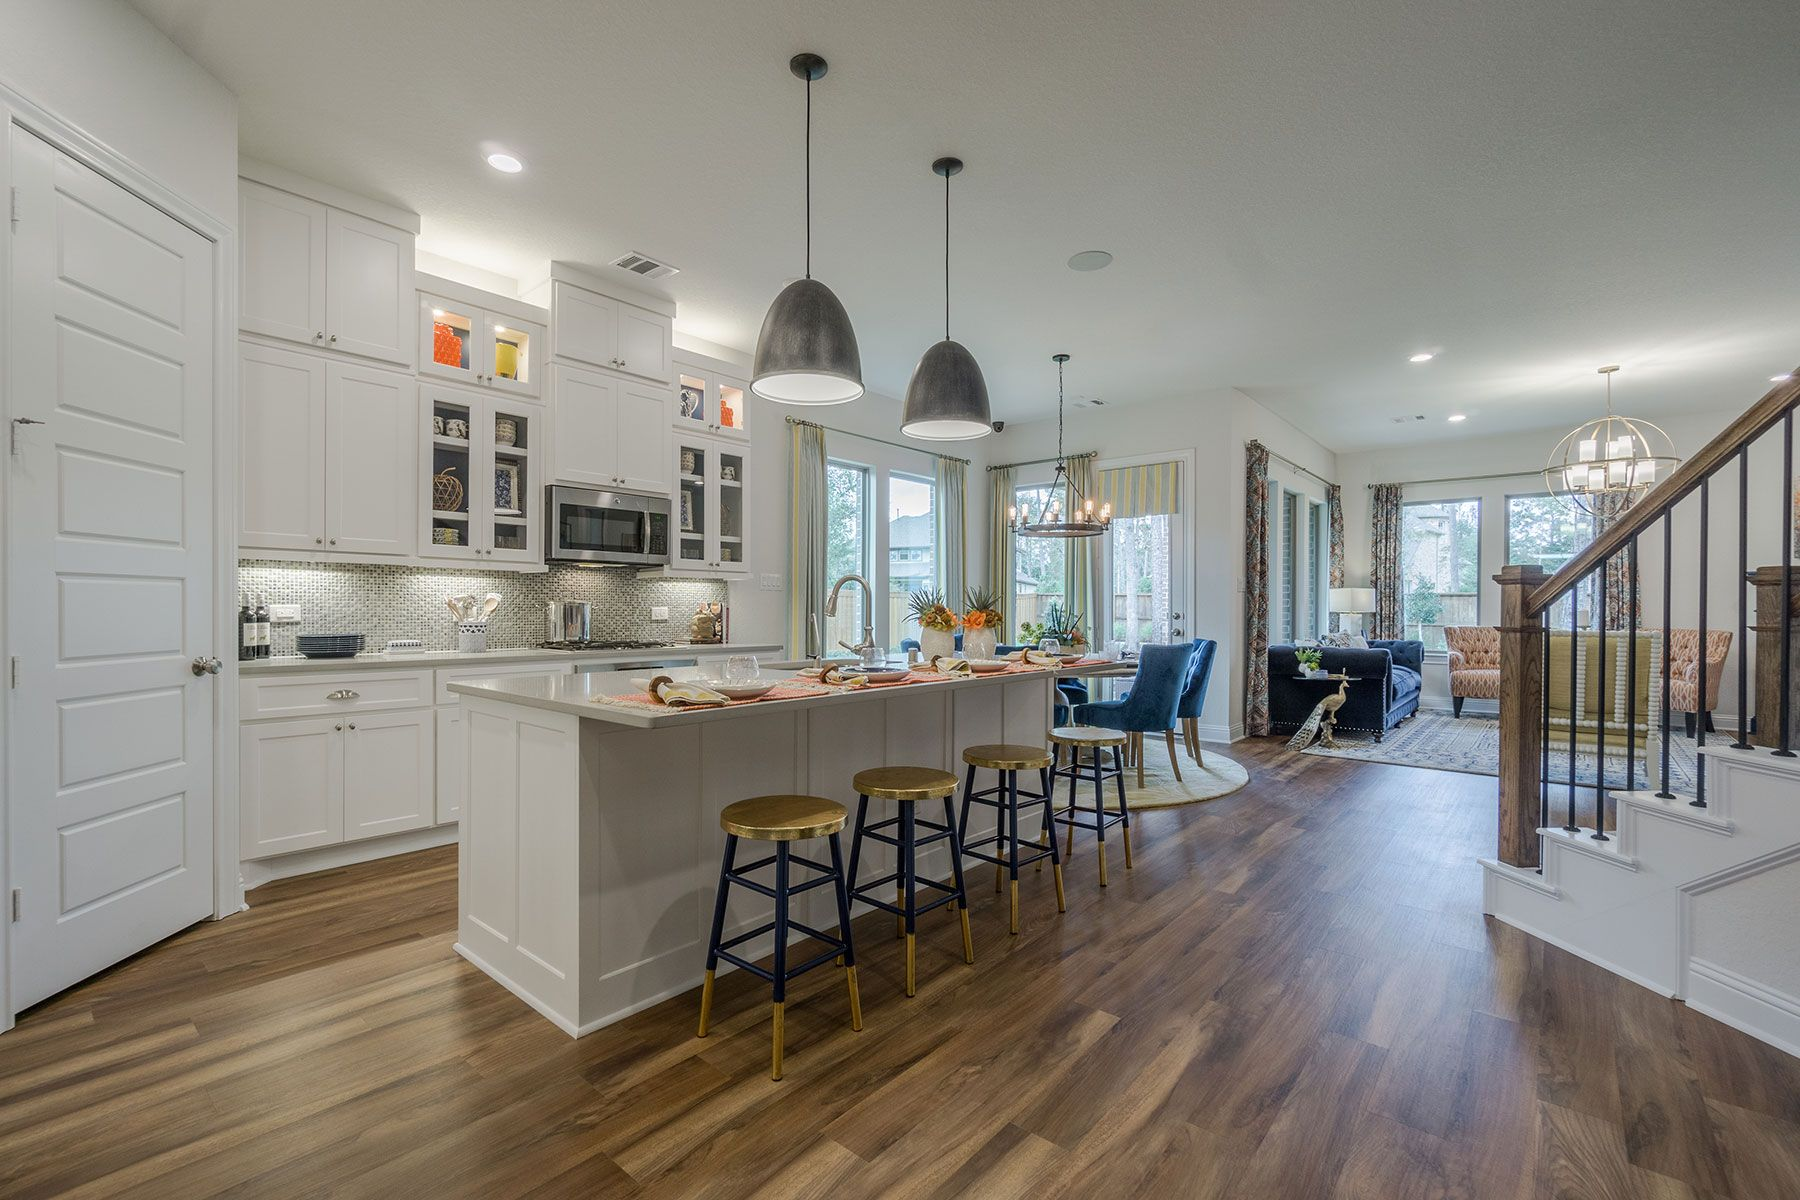 Kitchen featured in the Roseville By M/I Homes in Houston, TX